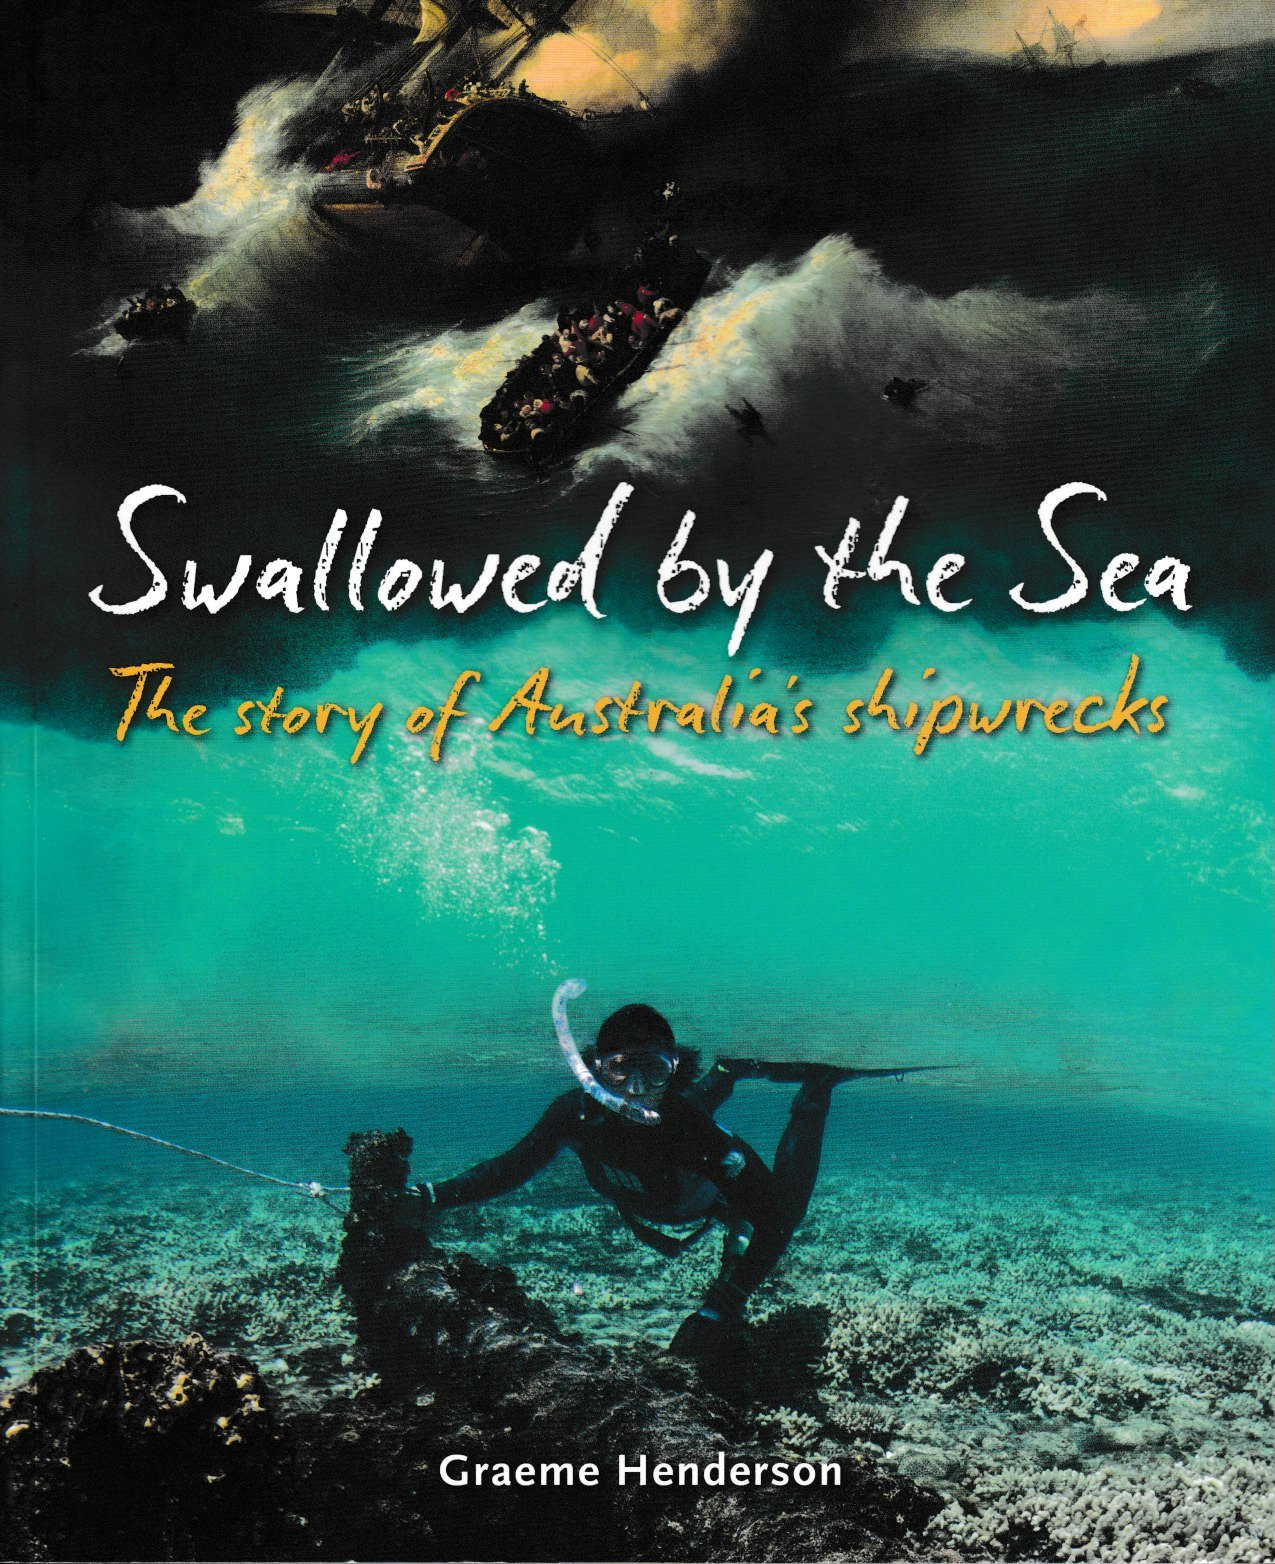 Swallowed by the Sea - the story of Australia's Shipwrecks